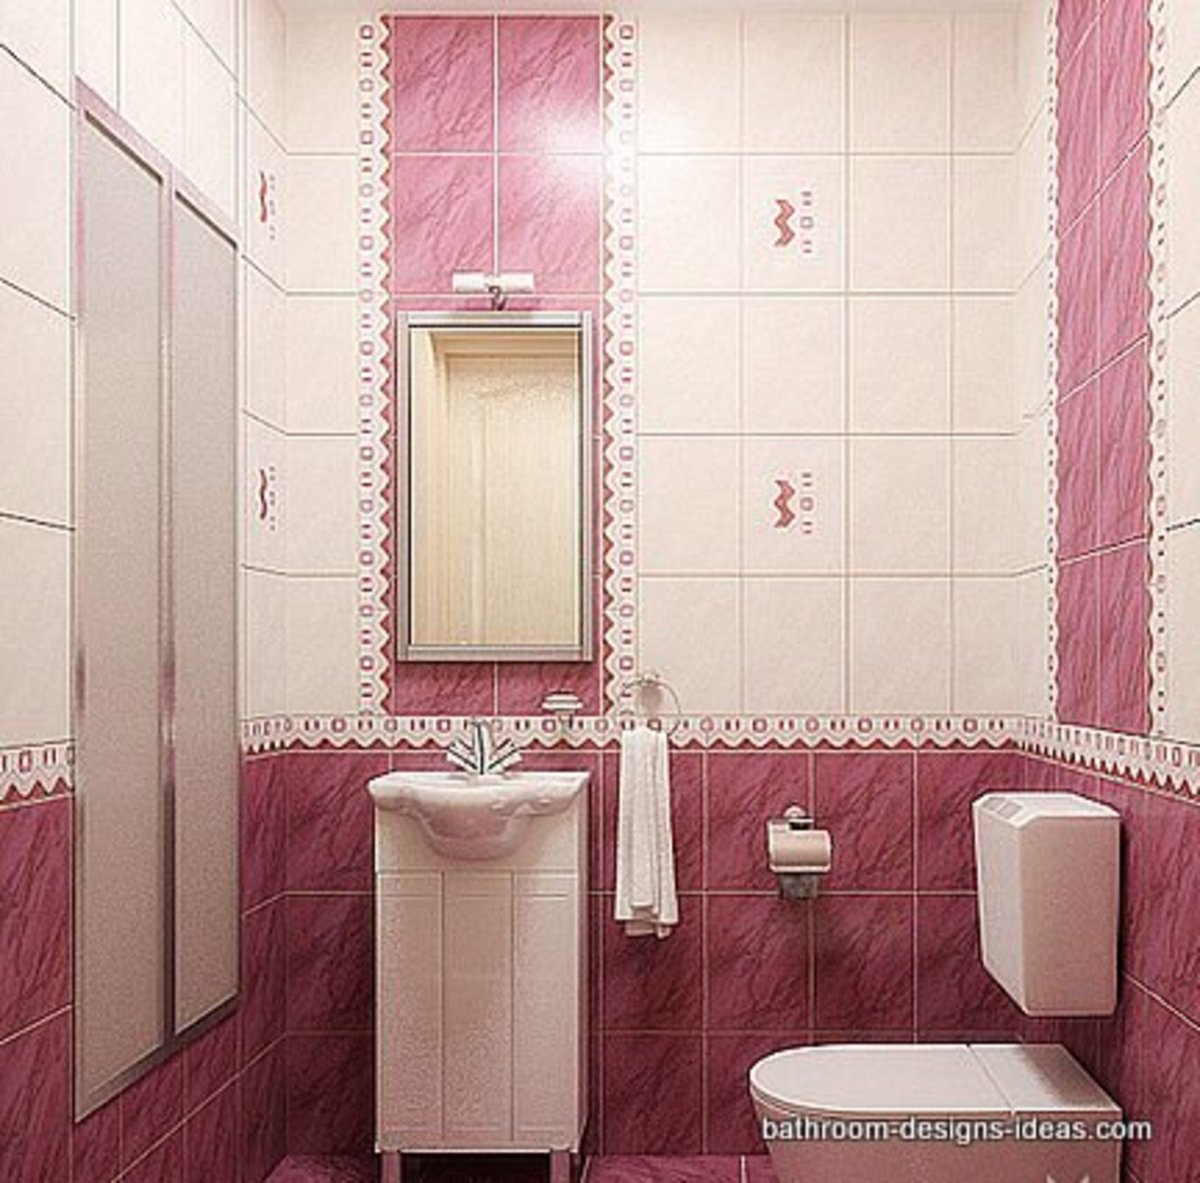 Home Remodeling Improvement Pretty In Pink Design Ideas Hubpages Pink Tile  Bathroom Decorating Ideas